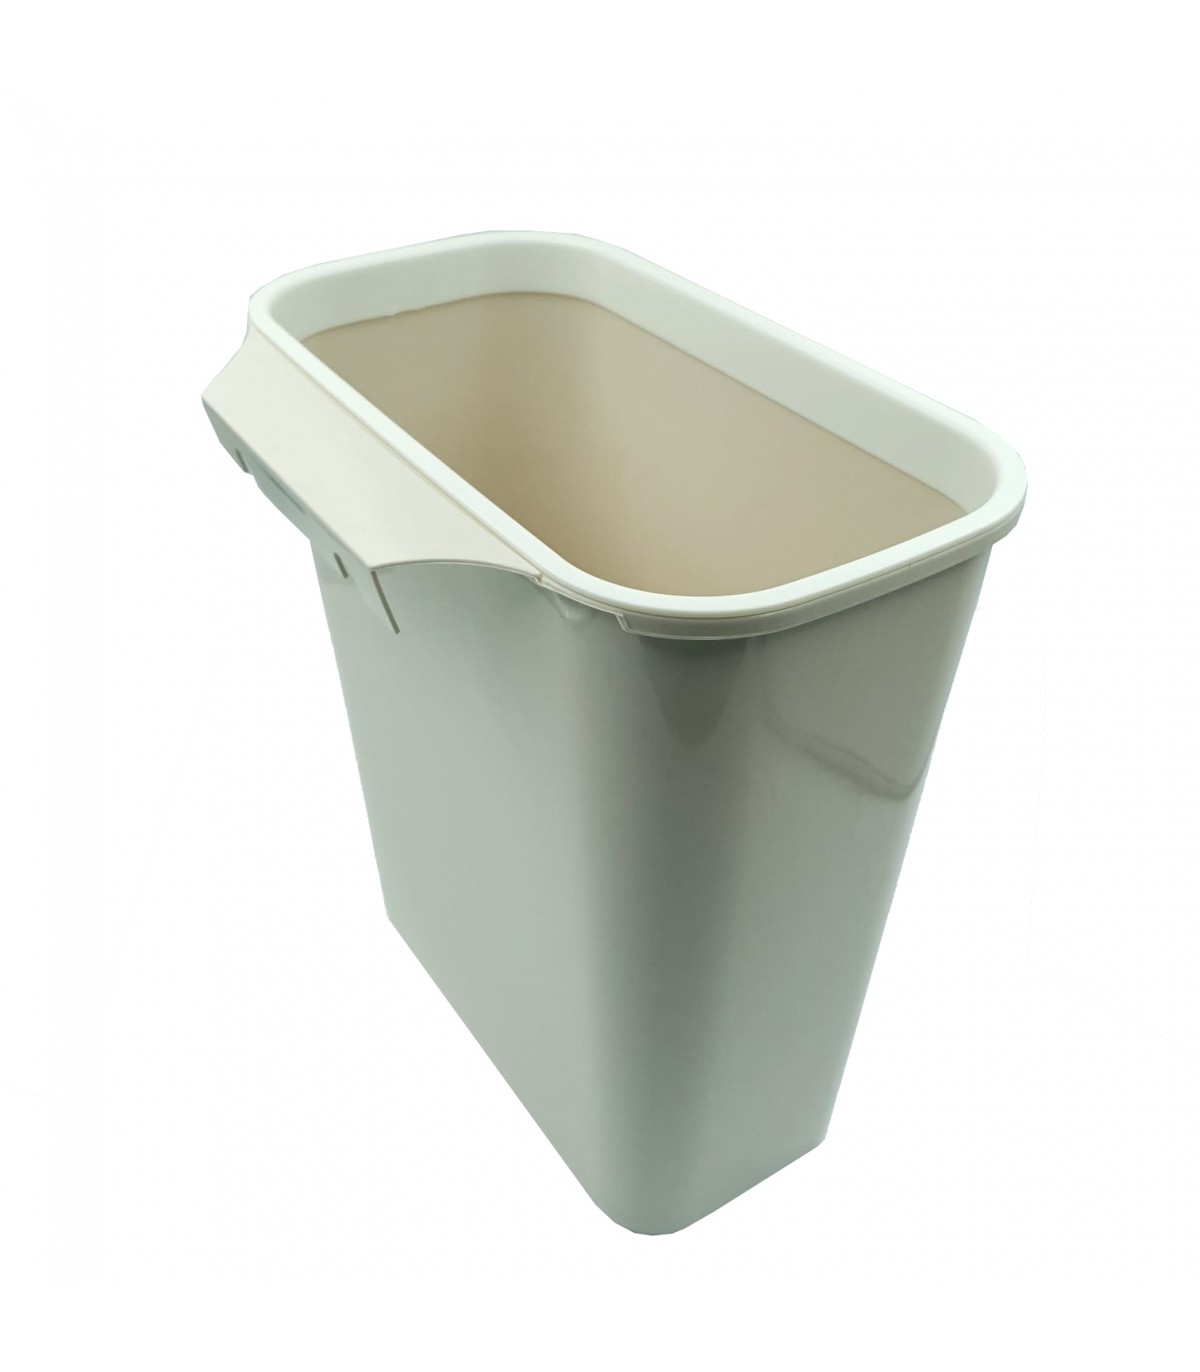 Hanging Trash Bin For Kitchen Cabinet Door Large Need Space On Kitchen Top